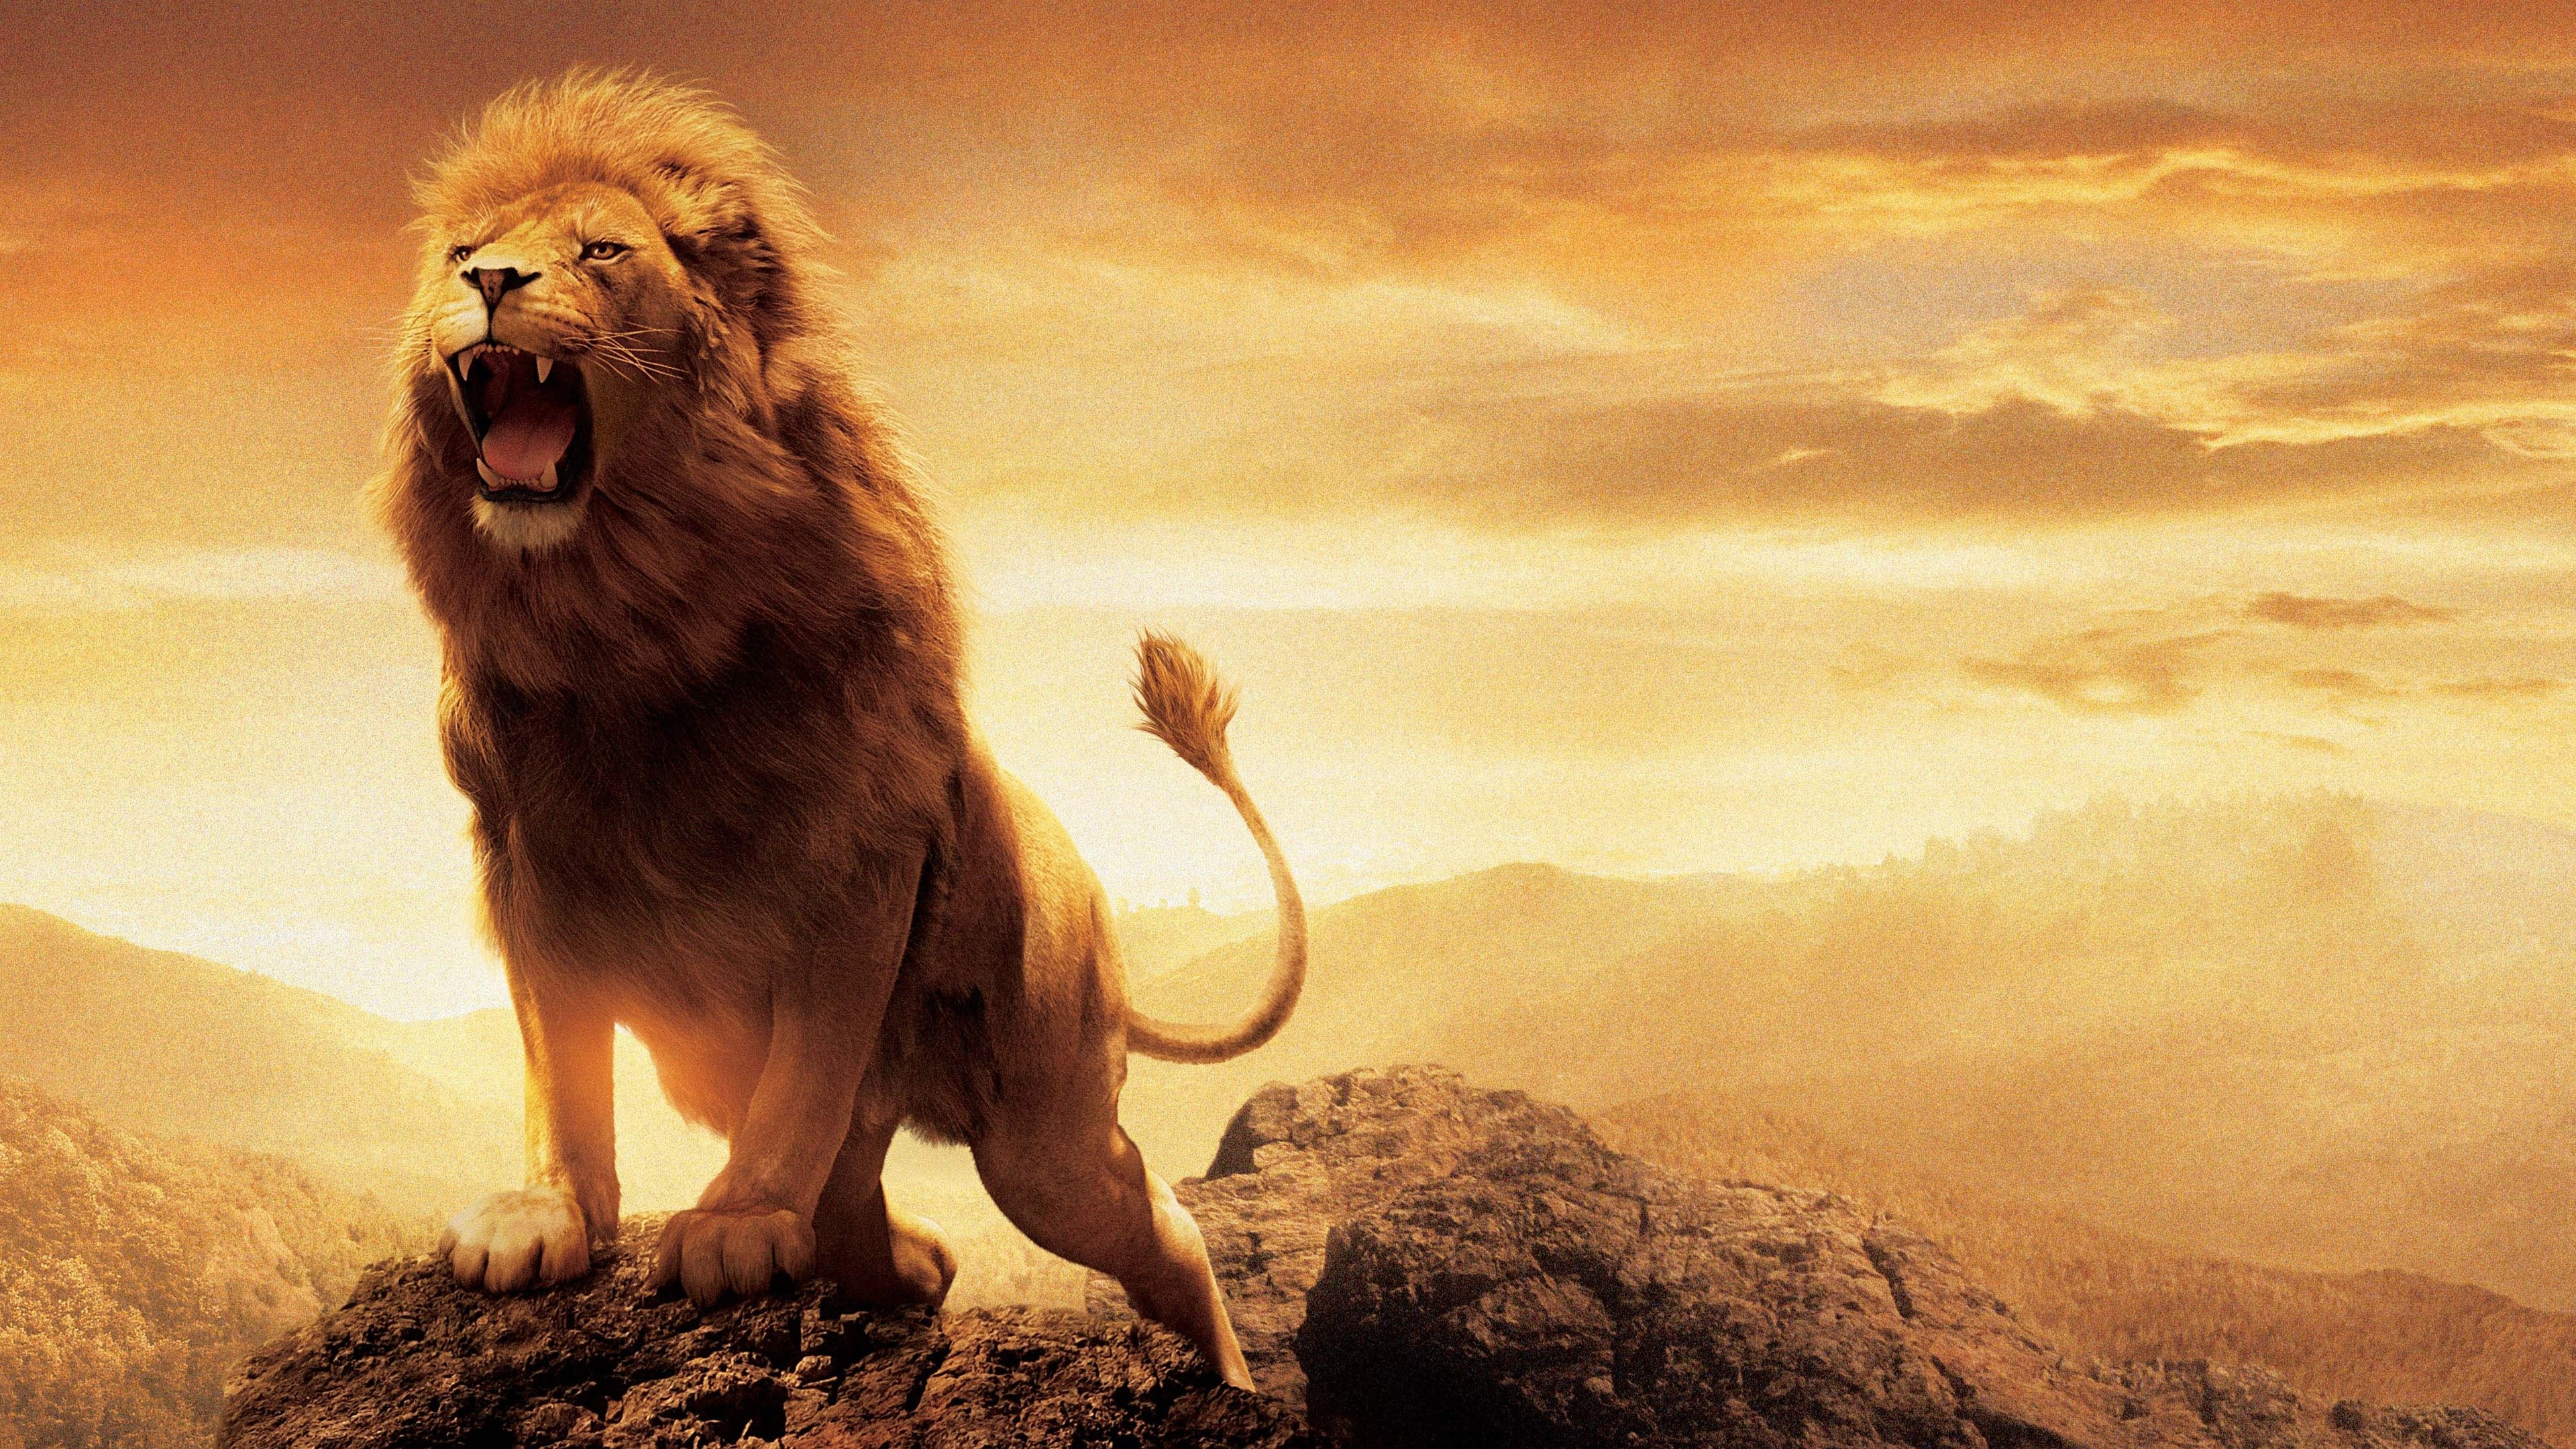 Lion of Judah Wallpaper 3840x2160